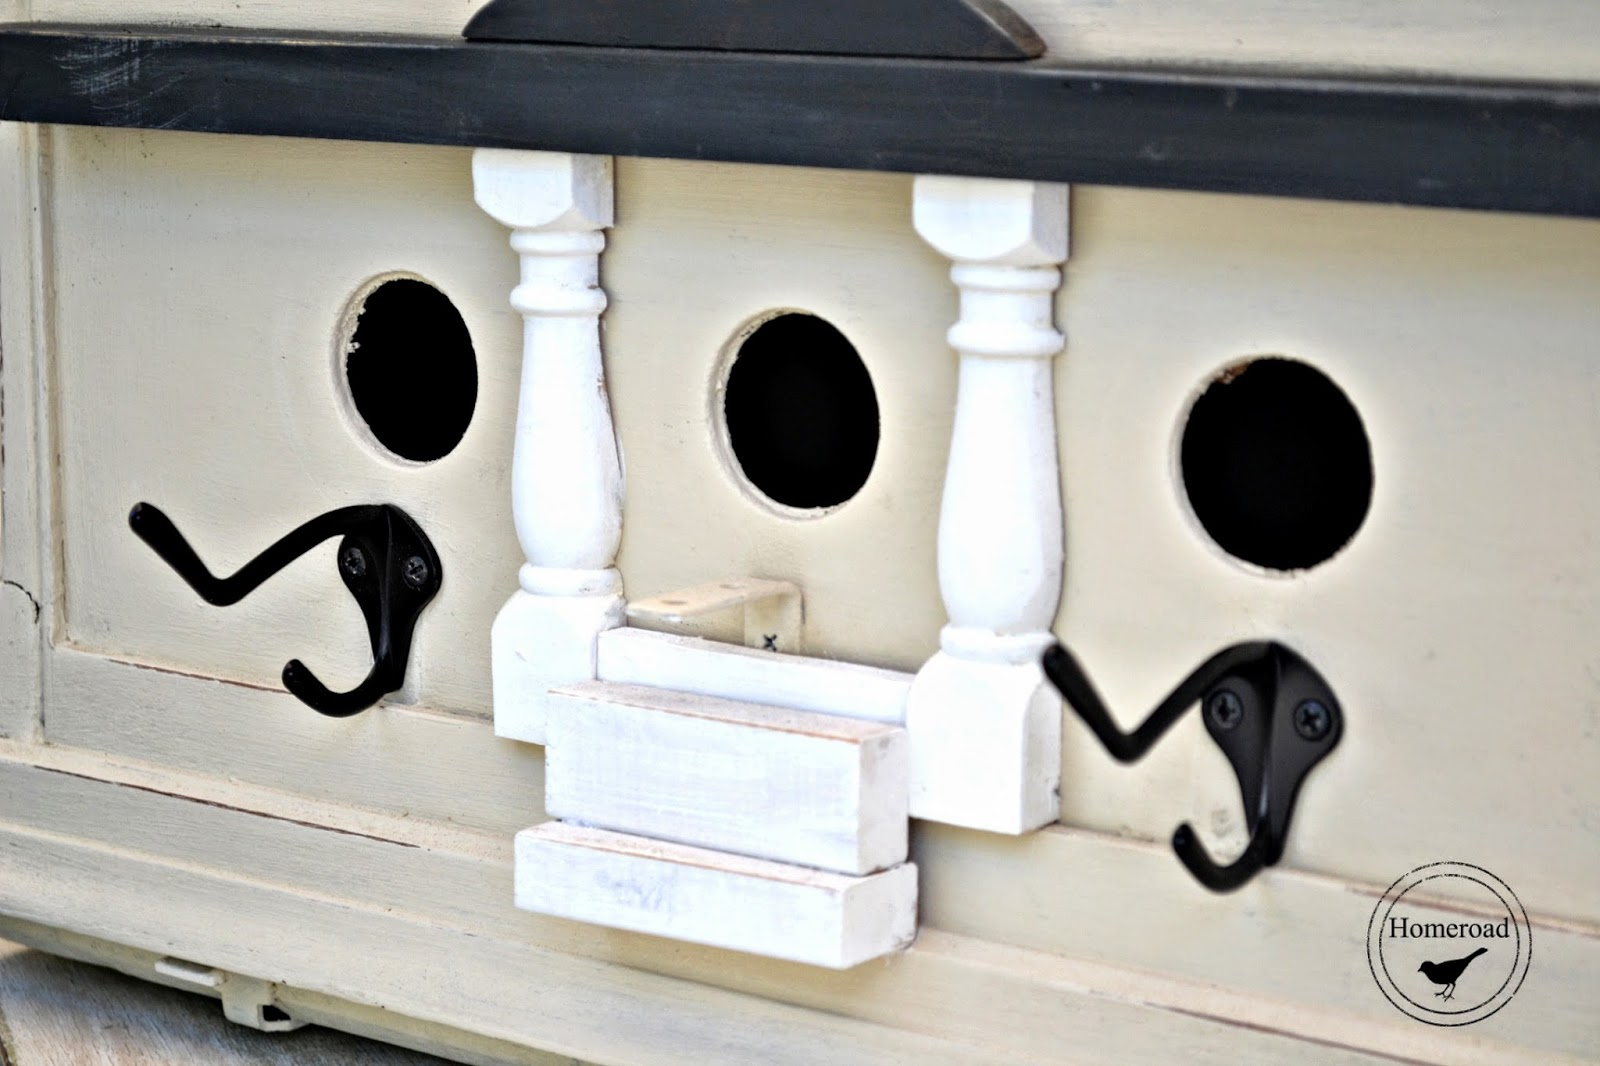 A Repurposed Birdhouse Condo www.homeroad.net